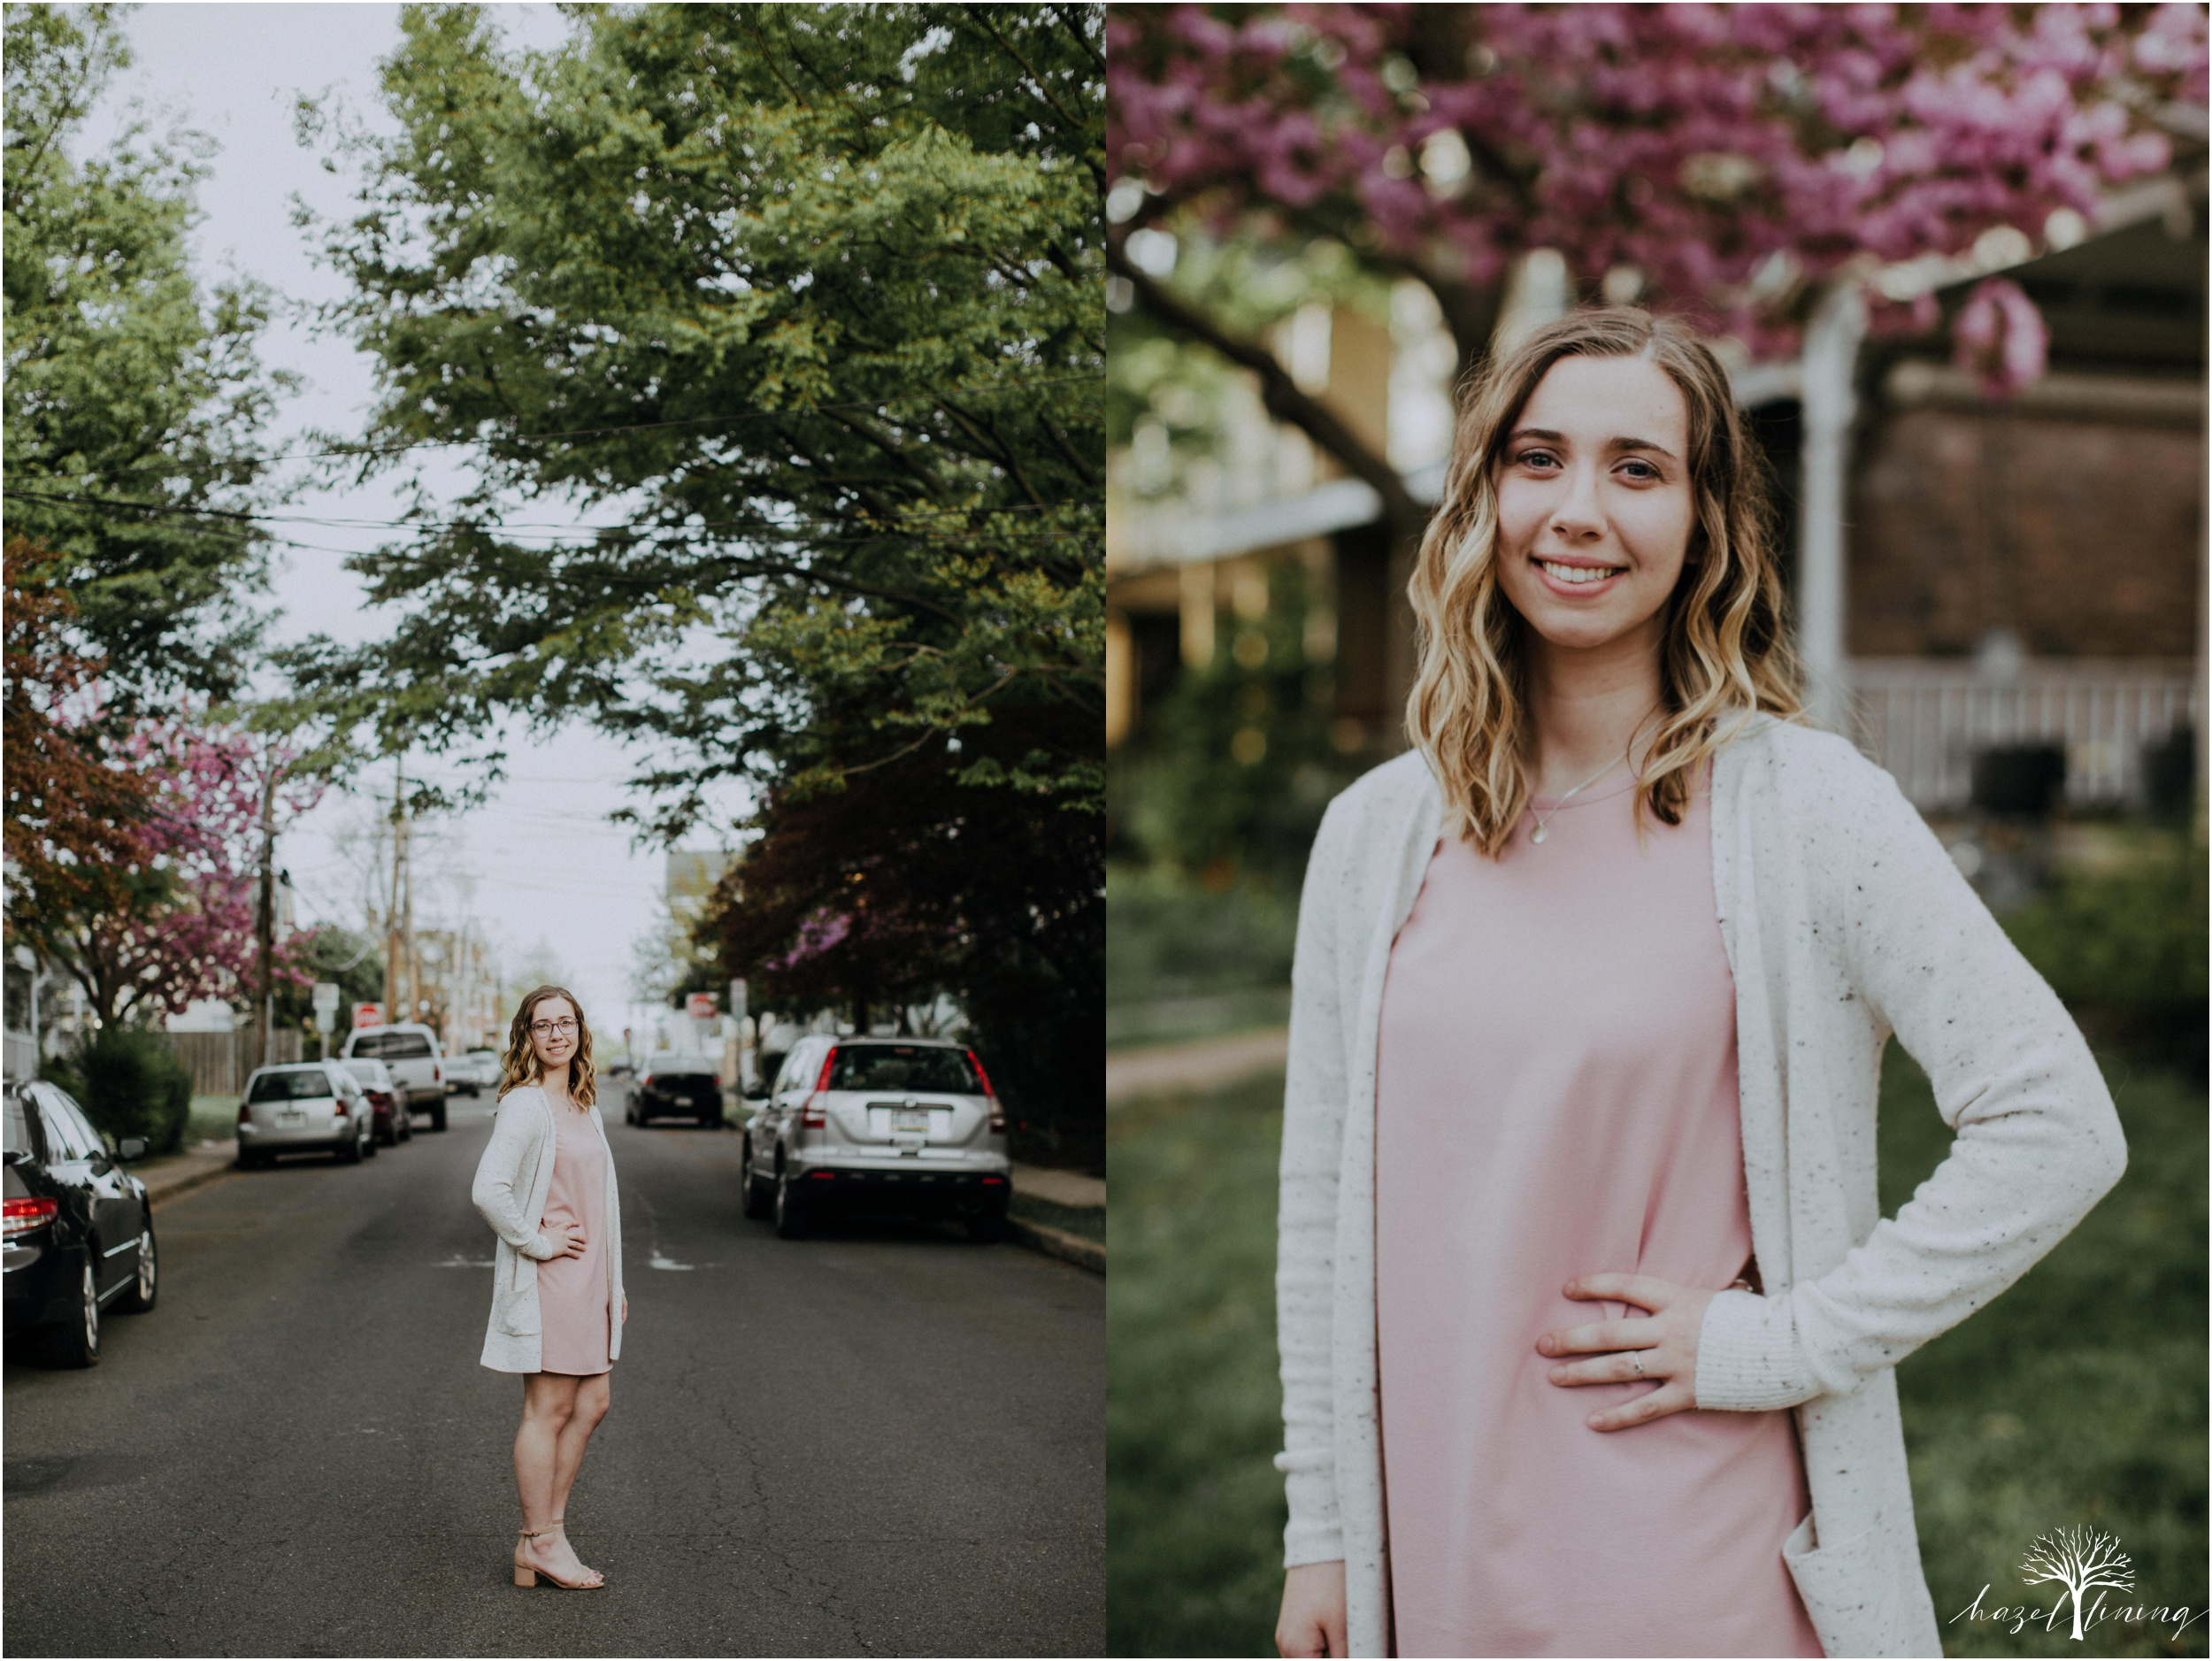 maddie-kiser-senior-portrait-session-doylestown-pennsylvania-spring-hazel-lining-photography-destination-elopement-wedding-engagement-photography-year-in-review_0011.jpg